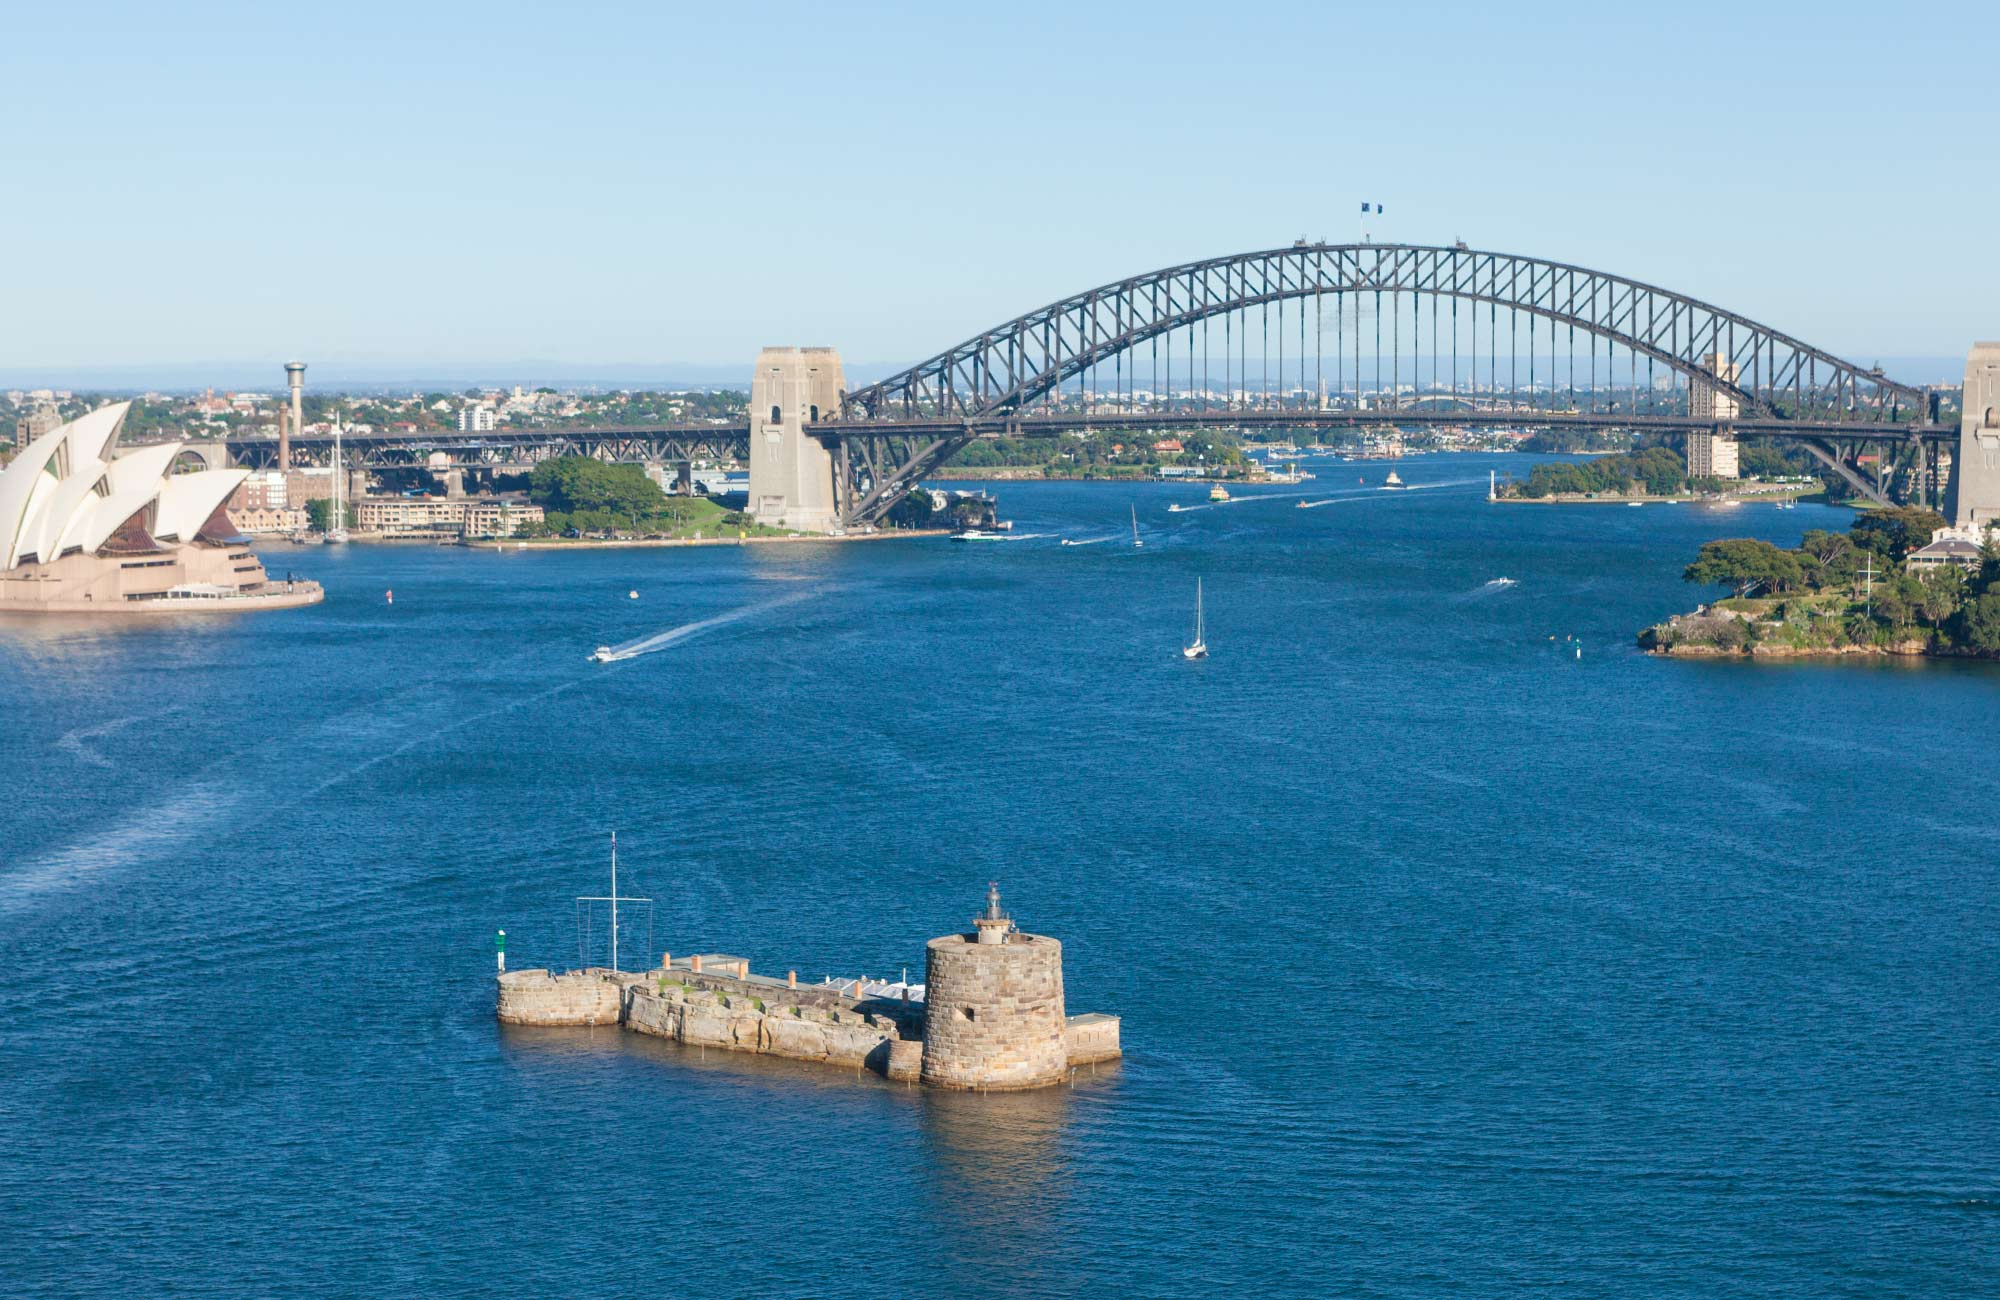 Views over Sydney Harbour National Park. Photo: David Finnegan